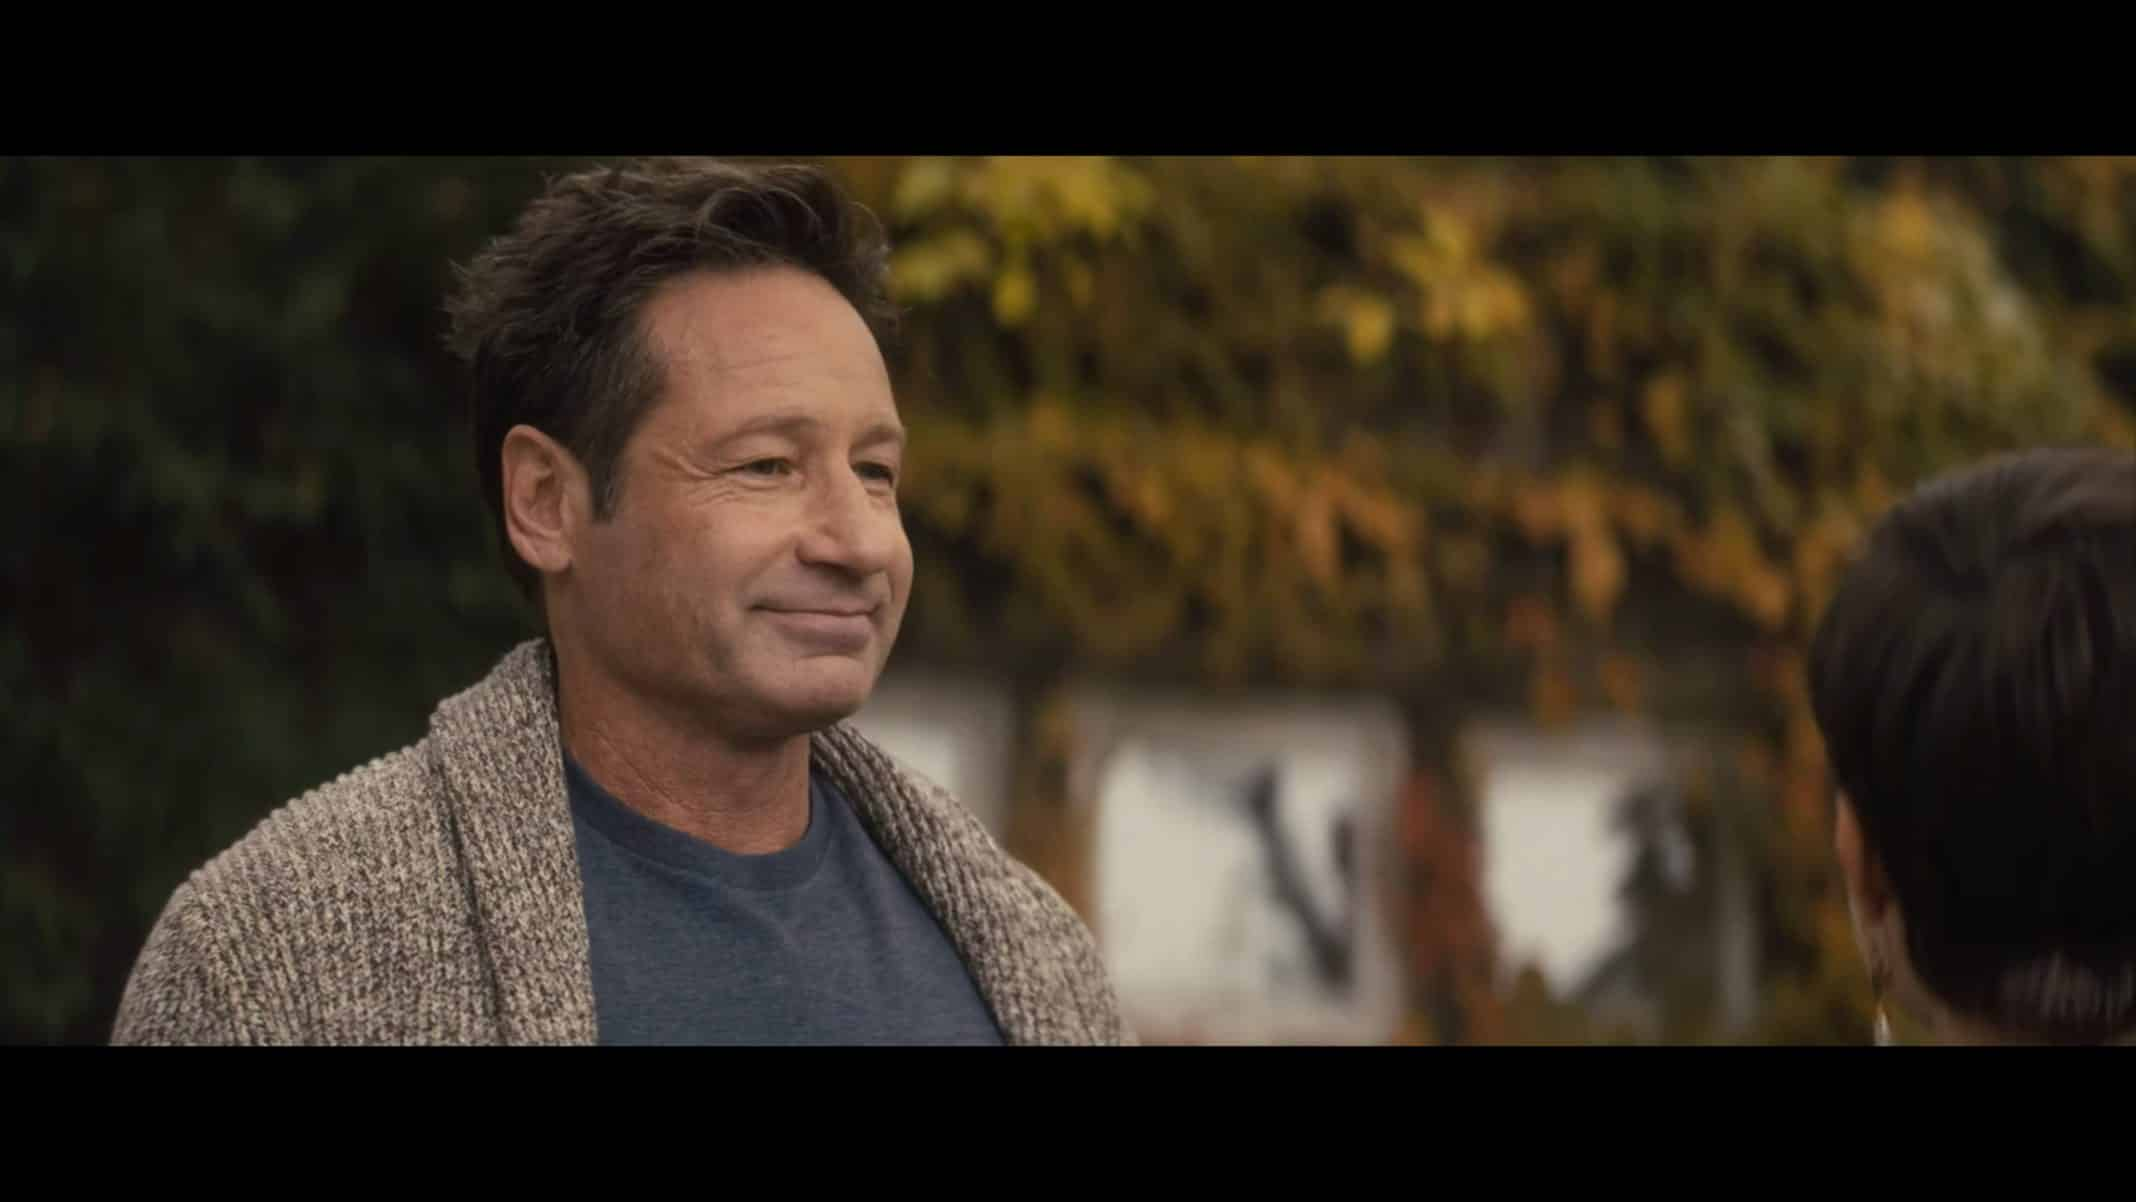 Adam (David Duchovny) as Lily moves into home